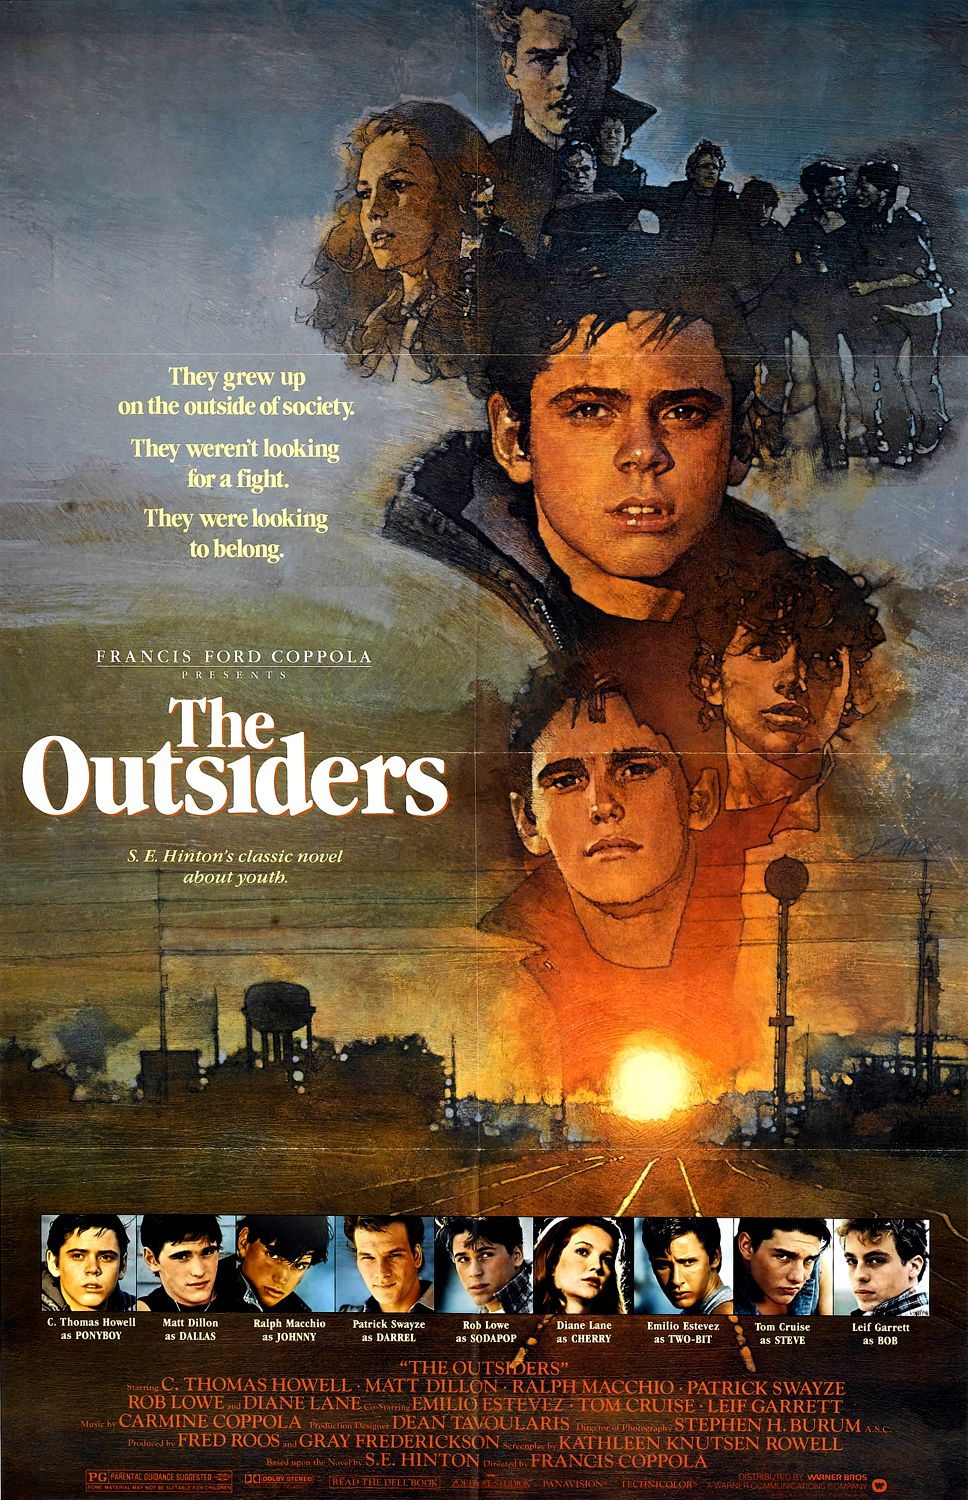 the outsiders from books to movies Amazoncom: the outsiders: tom cruise, matt dillon, emilio estevez, c thomas howell, francis ford coppola: movies & tv.